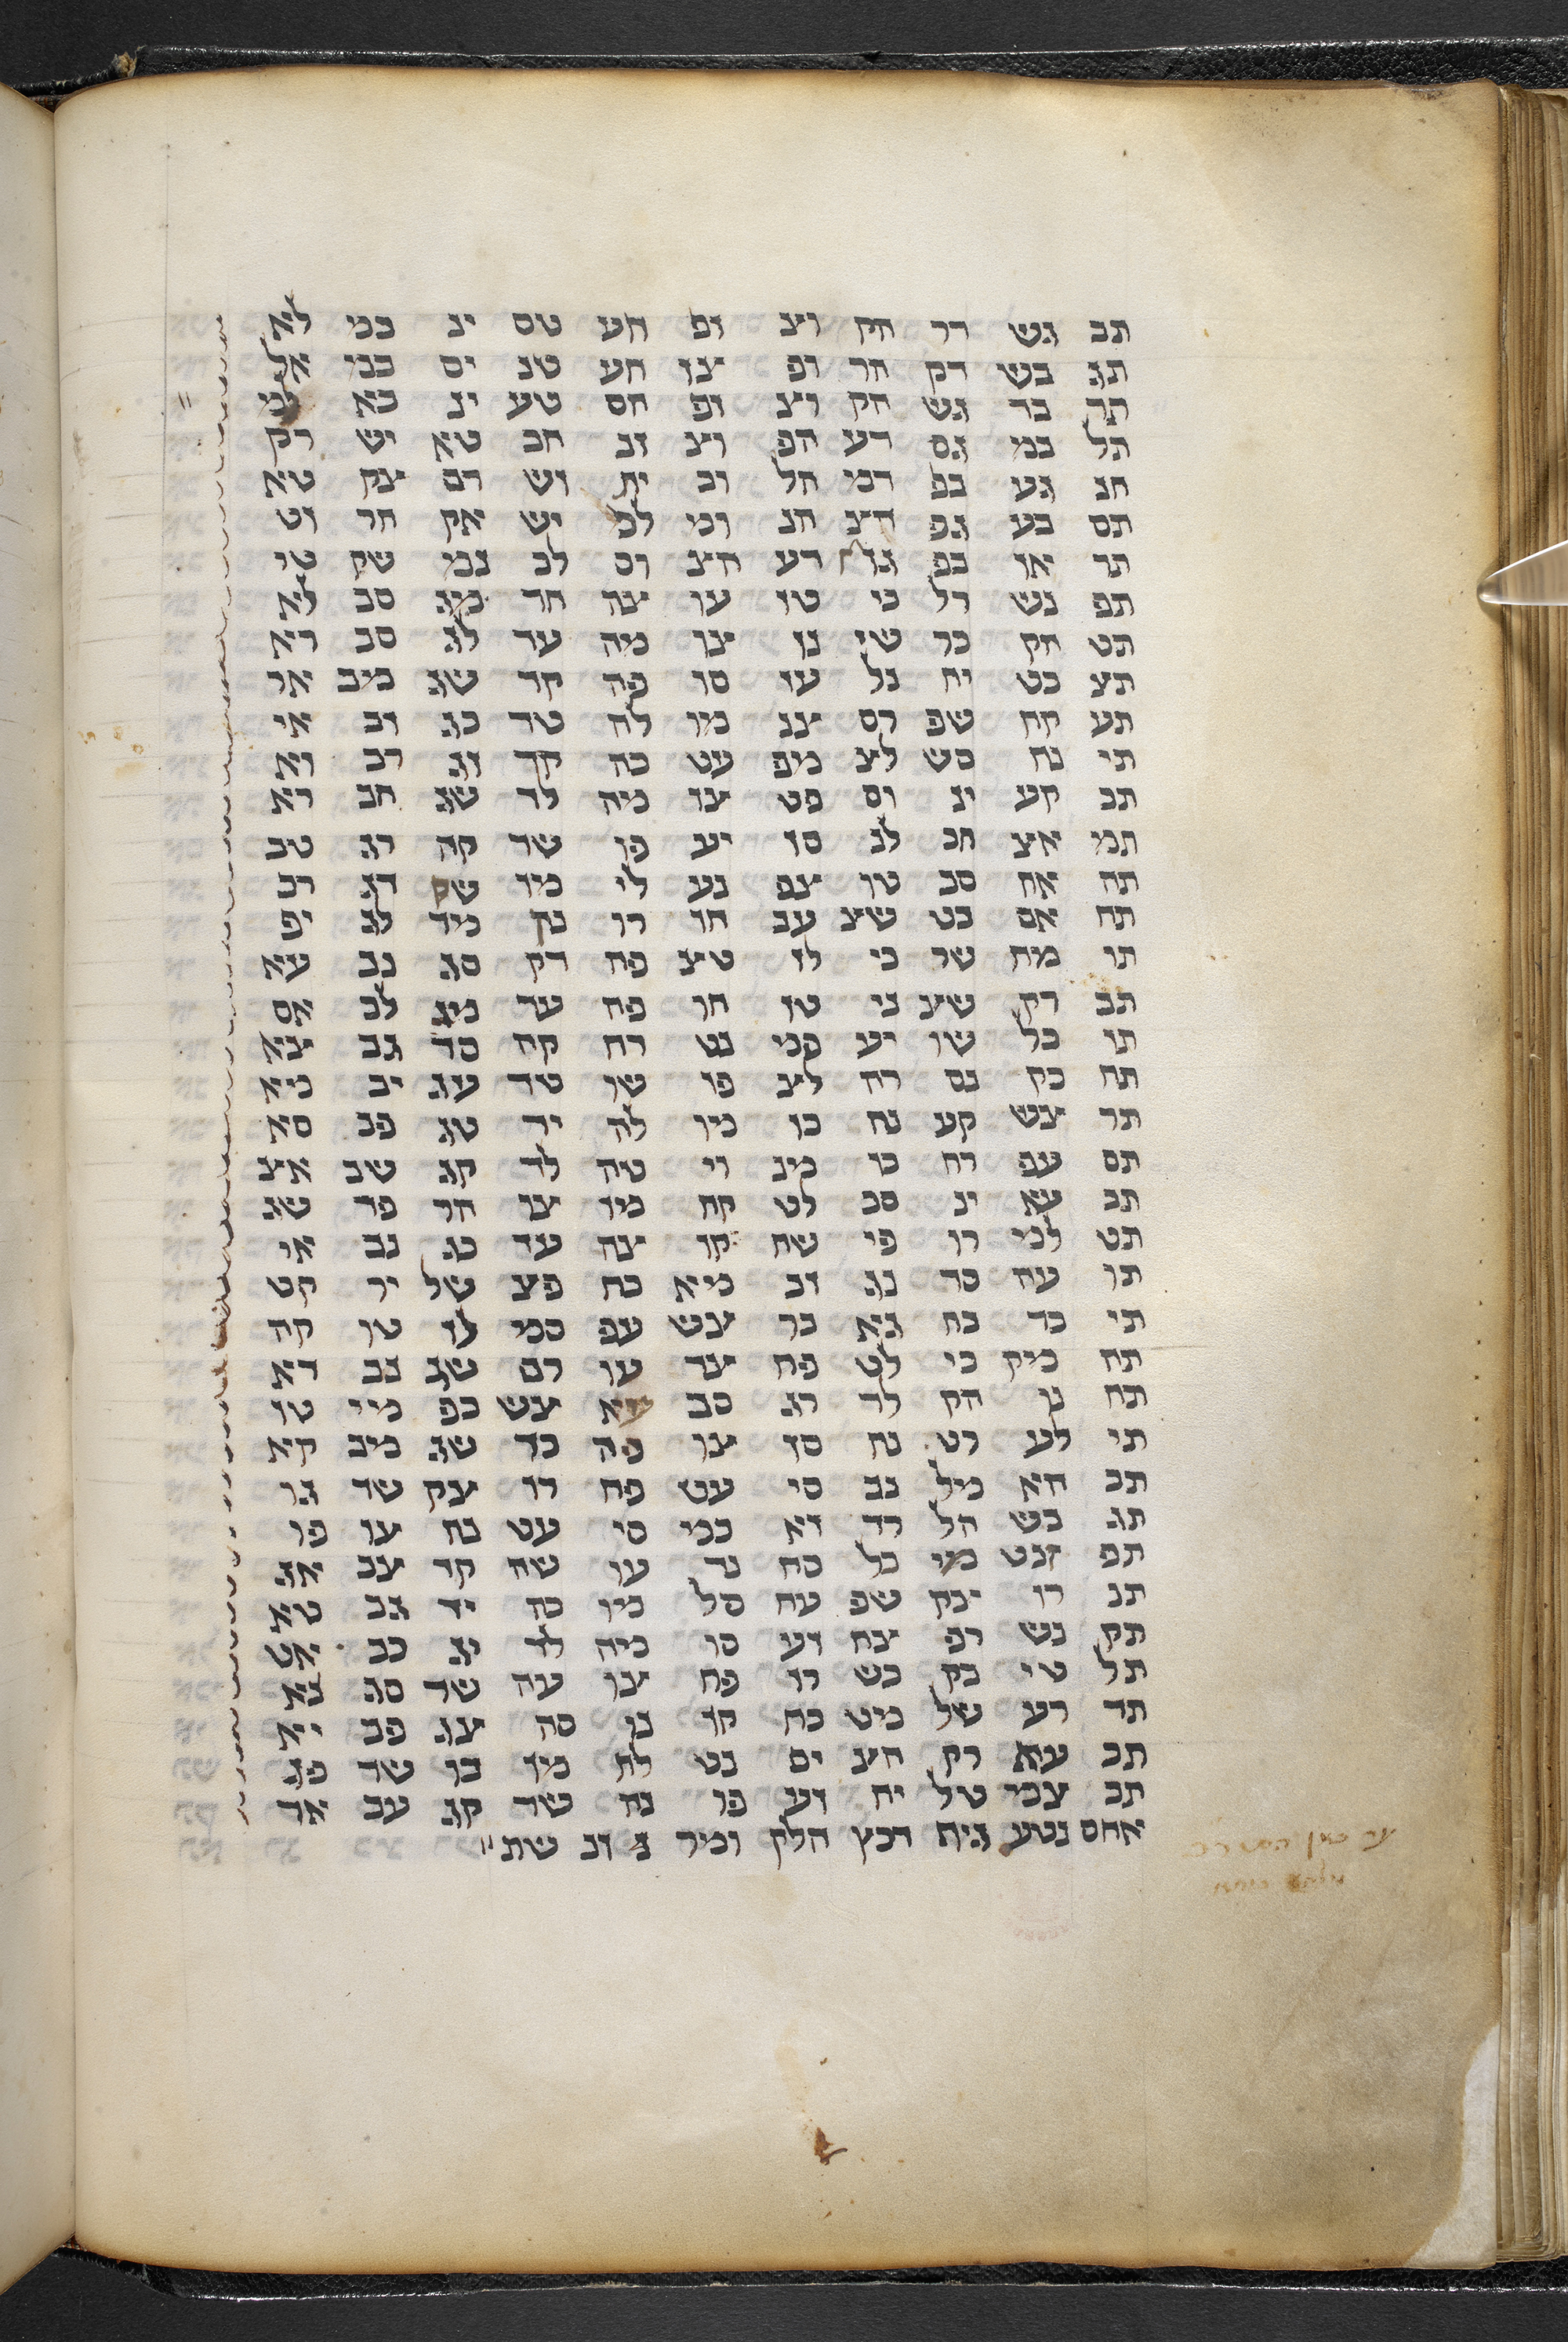 A table of letter permutation accompanying Perush Sefer yetsirah, followed by an anonymous commentary on angelic and divine names, Add MS 15299, Hebrew Manuscripts Digitisation Project, British Library